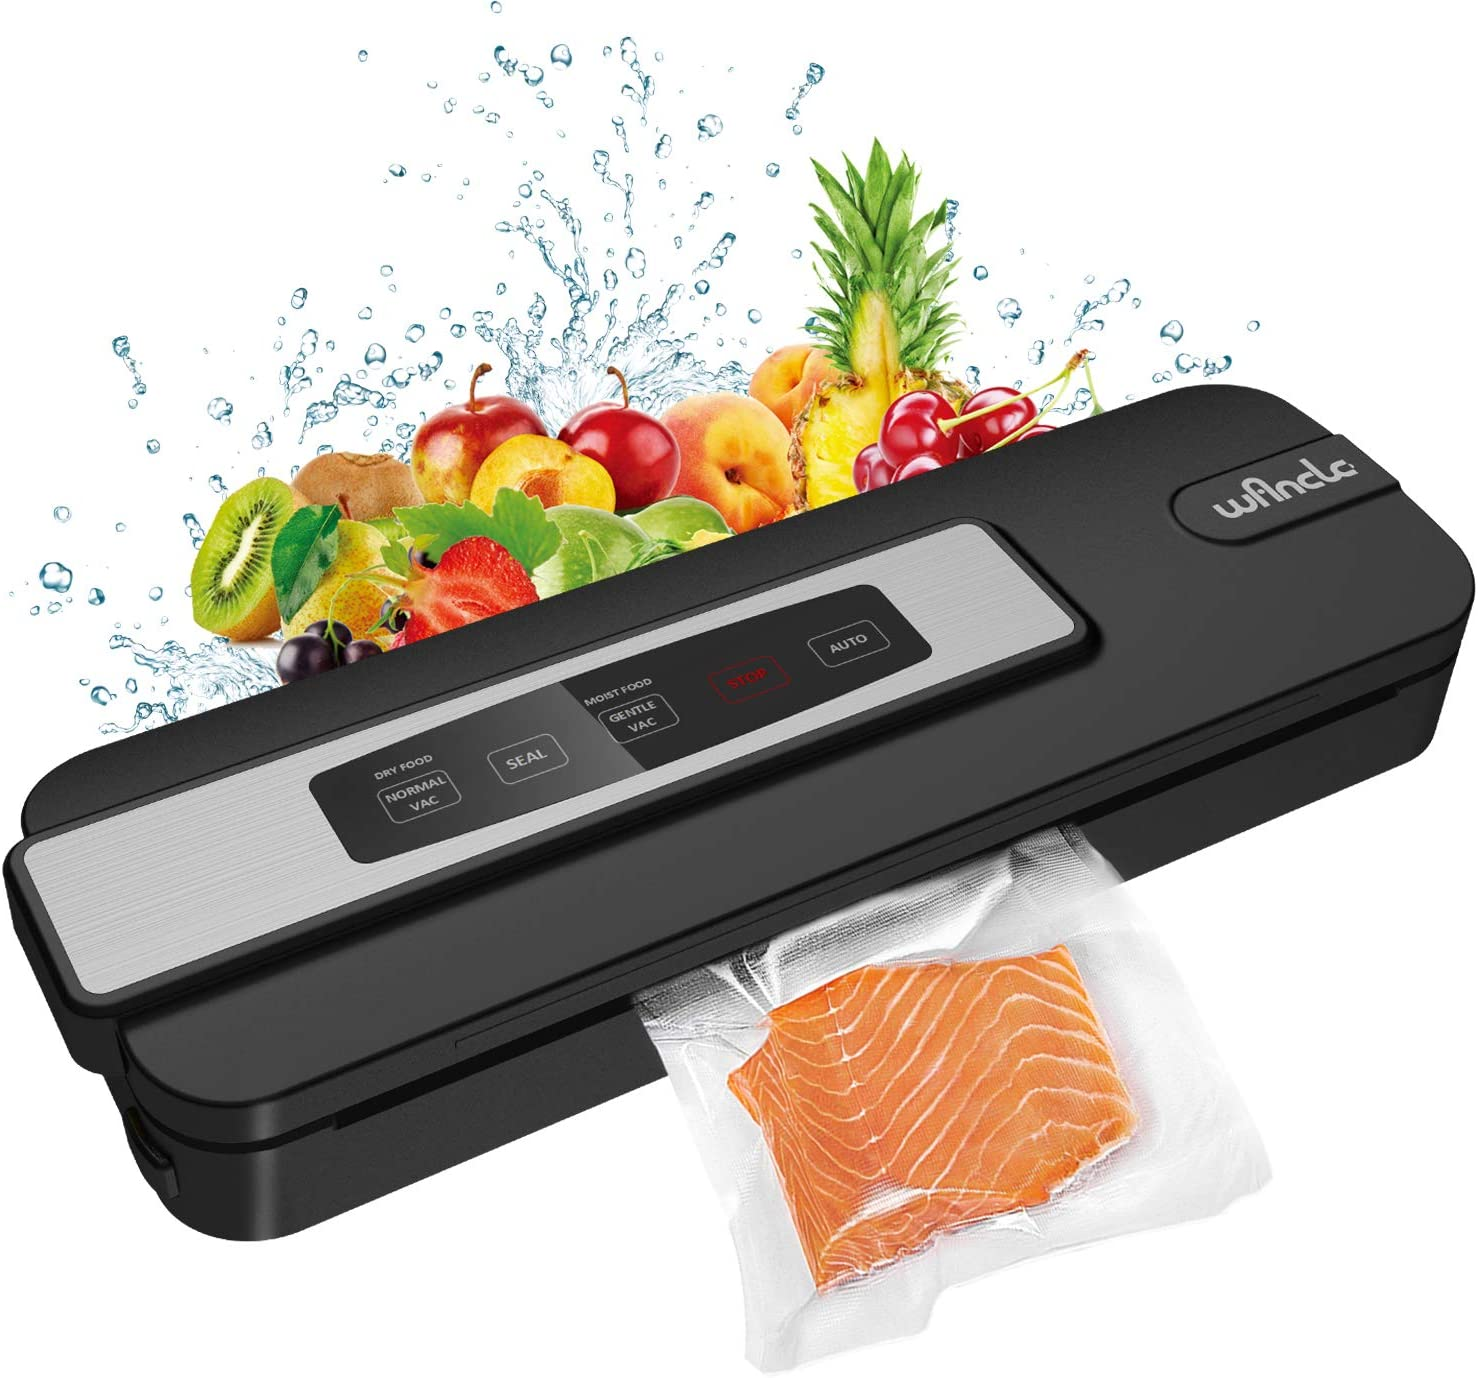 Wancle Vacuum Sealer Machine For Food - Automatic Sealing For Kitchen Sous Vide Meal - Compact Freezer Vac Sealer with Dry & Moist Mode - Professional Meat & Vegetable Pack Storage - Quiet Air Sealer